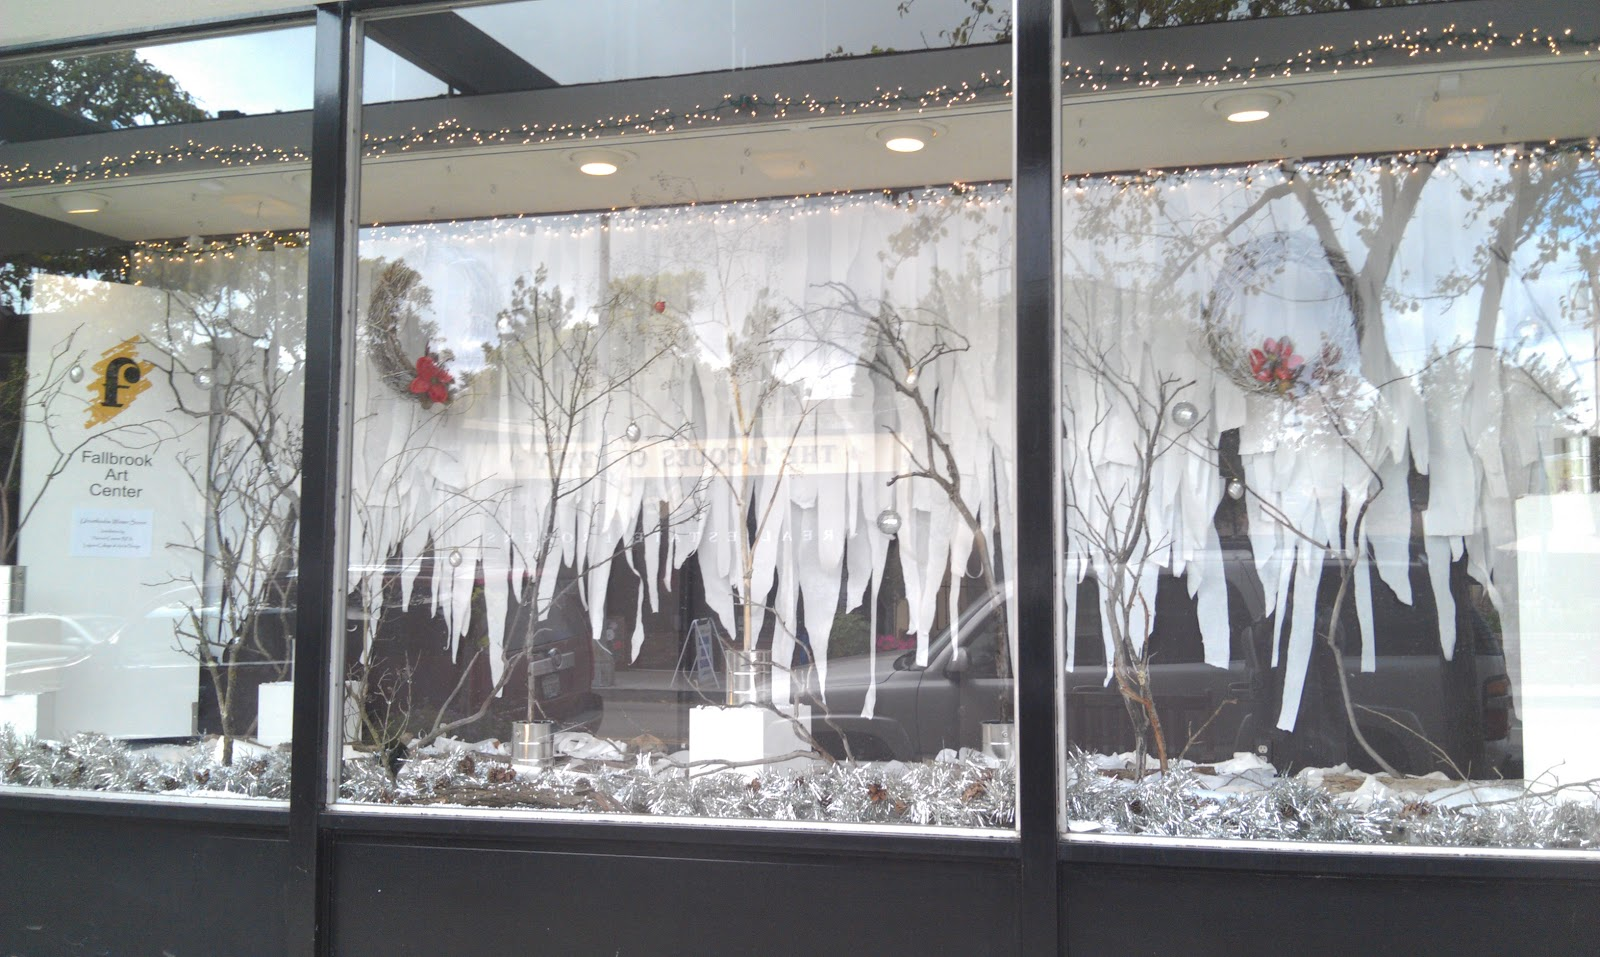 For this winter window display, we have in the back a cut white curtain into strips and fallen trees branches cemented into paint buckets.